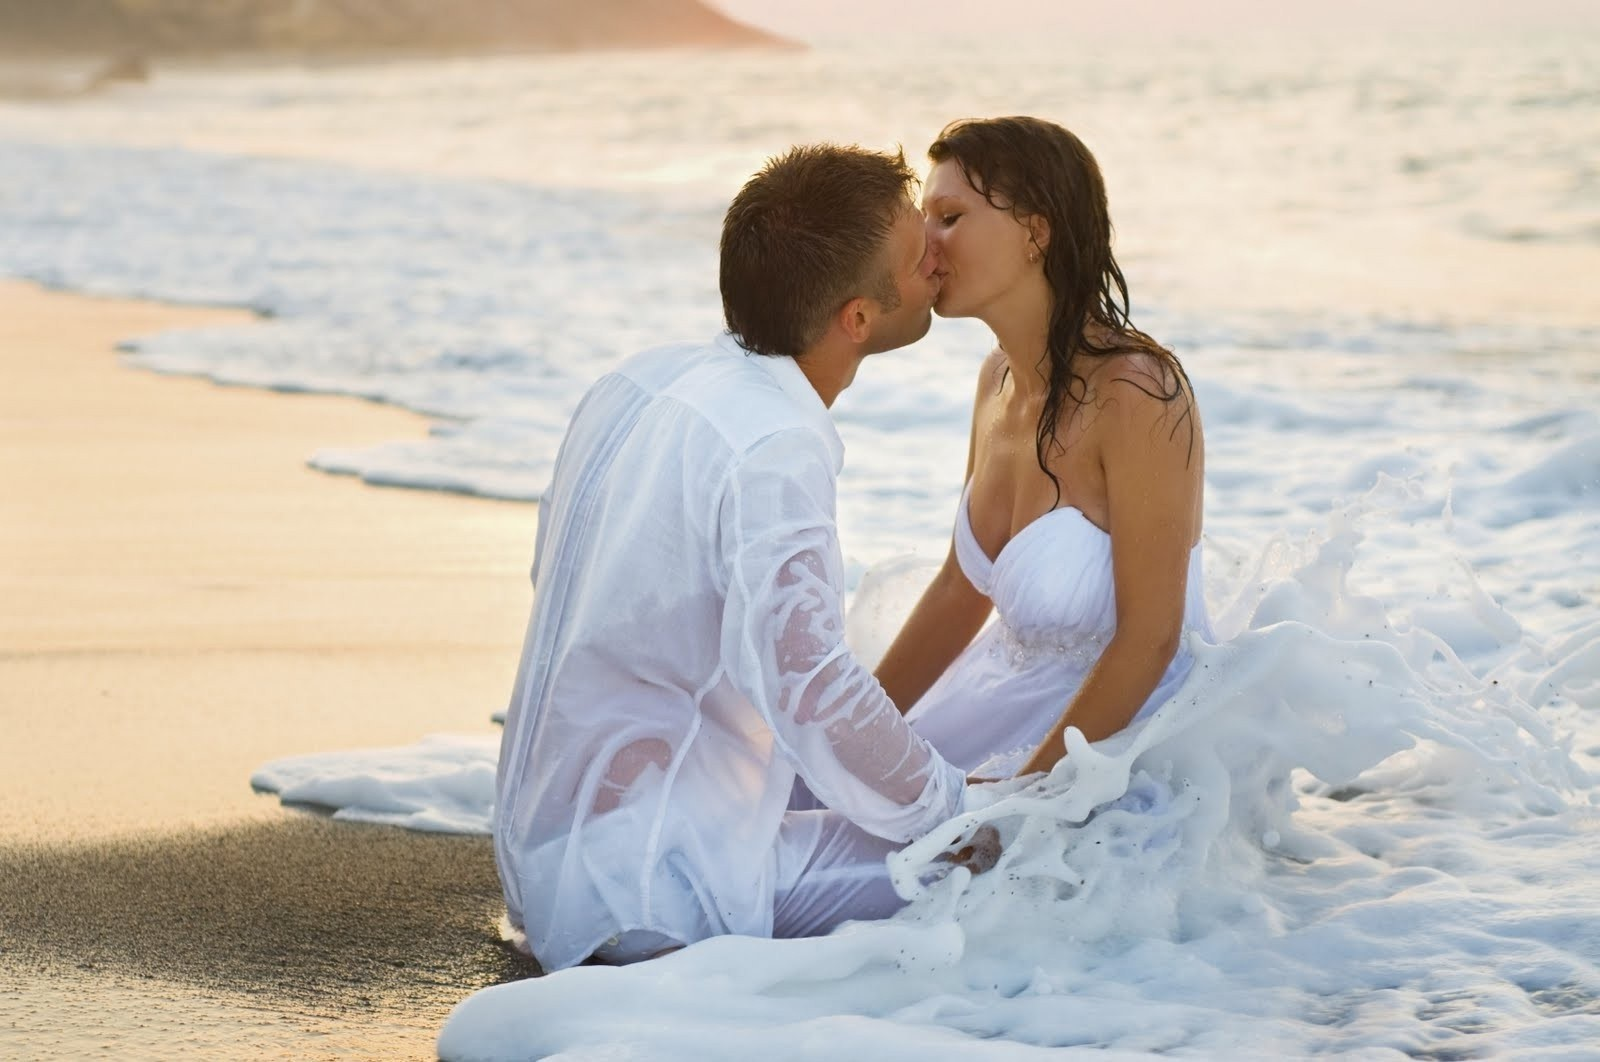 Romantic Couple Kiss Images at the Beach